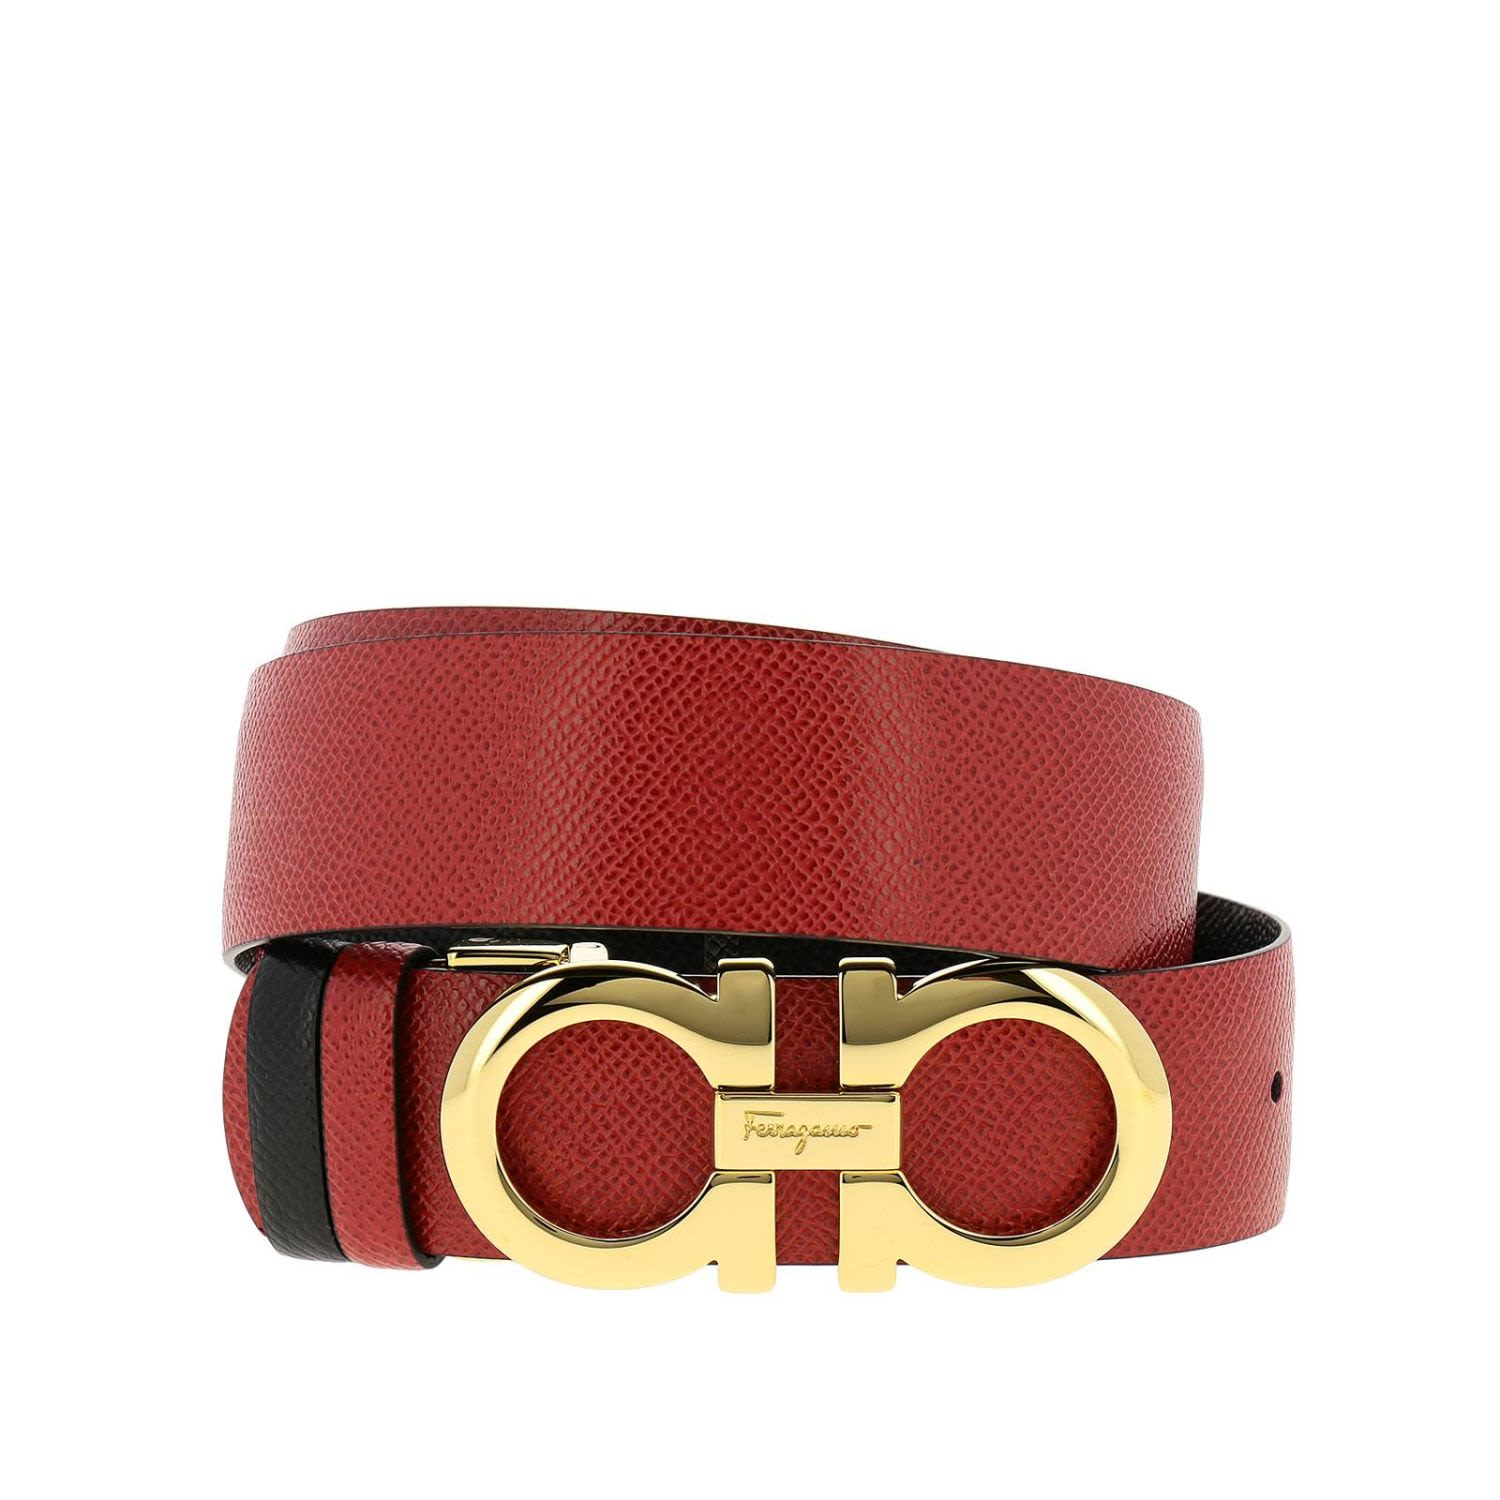 f21d12d1c26 Salvatore Ferragamo Belt Women